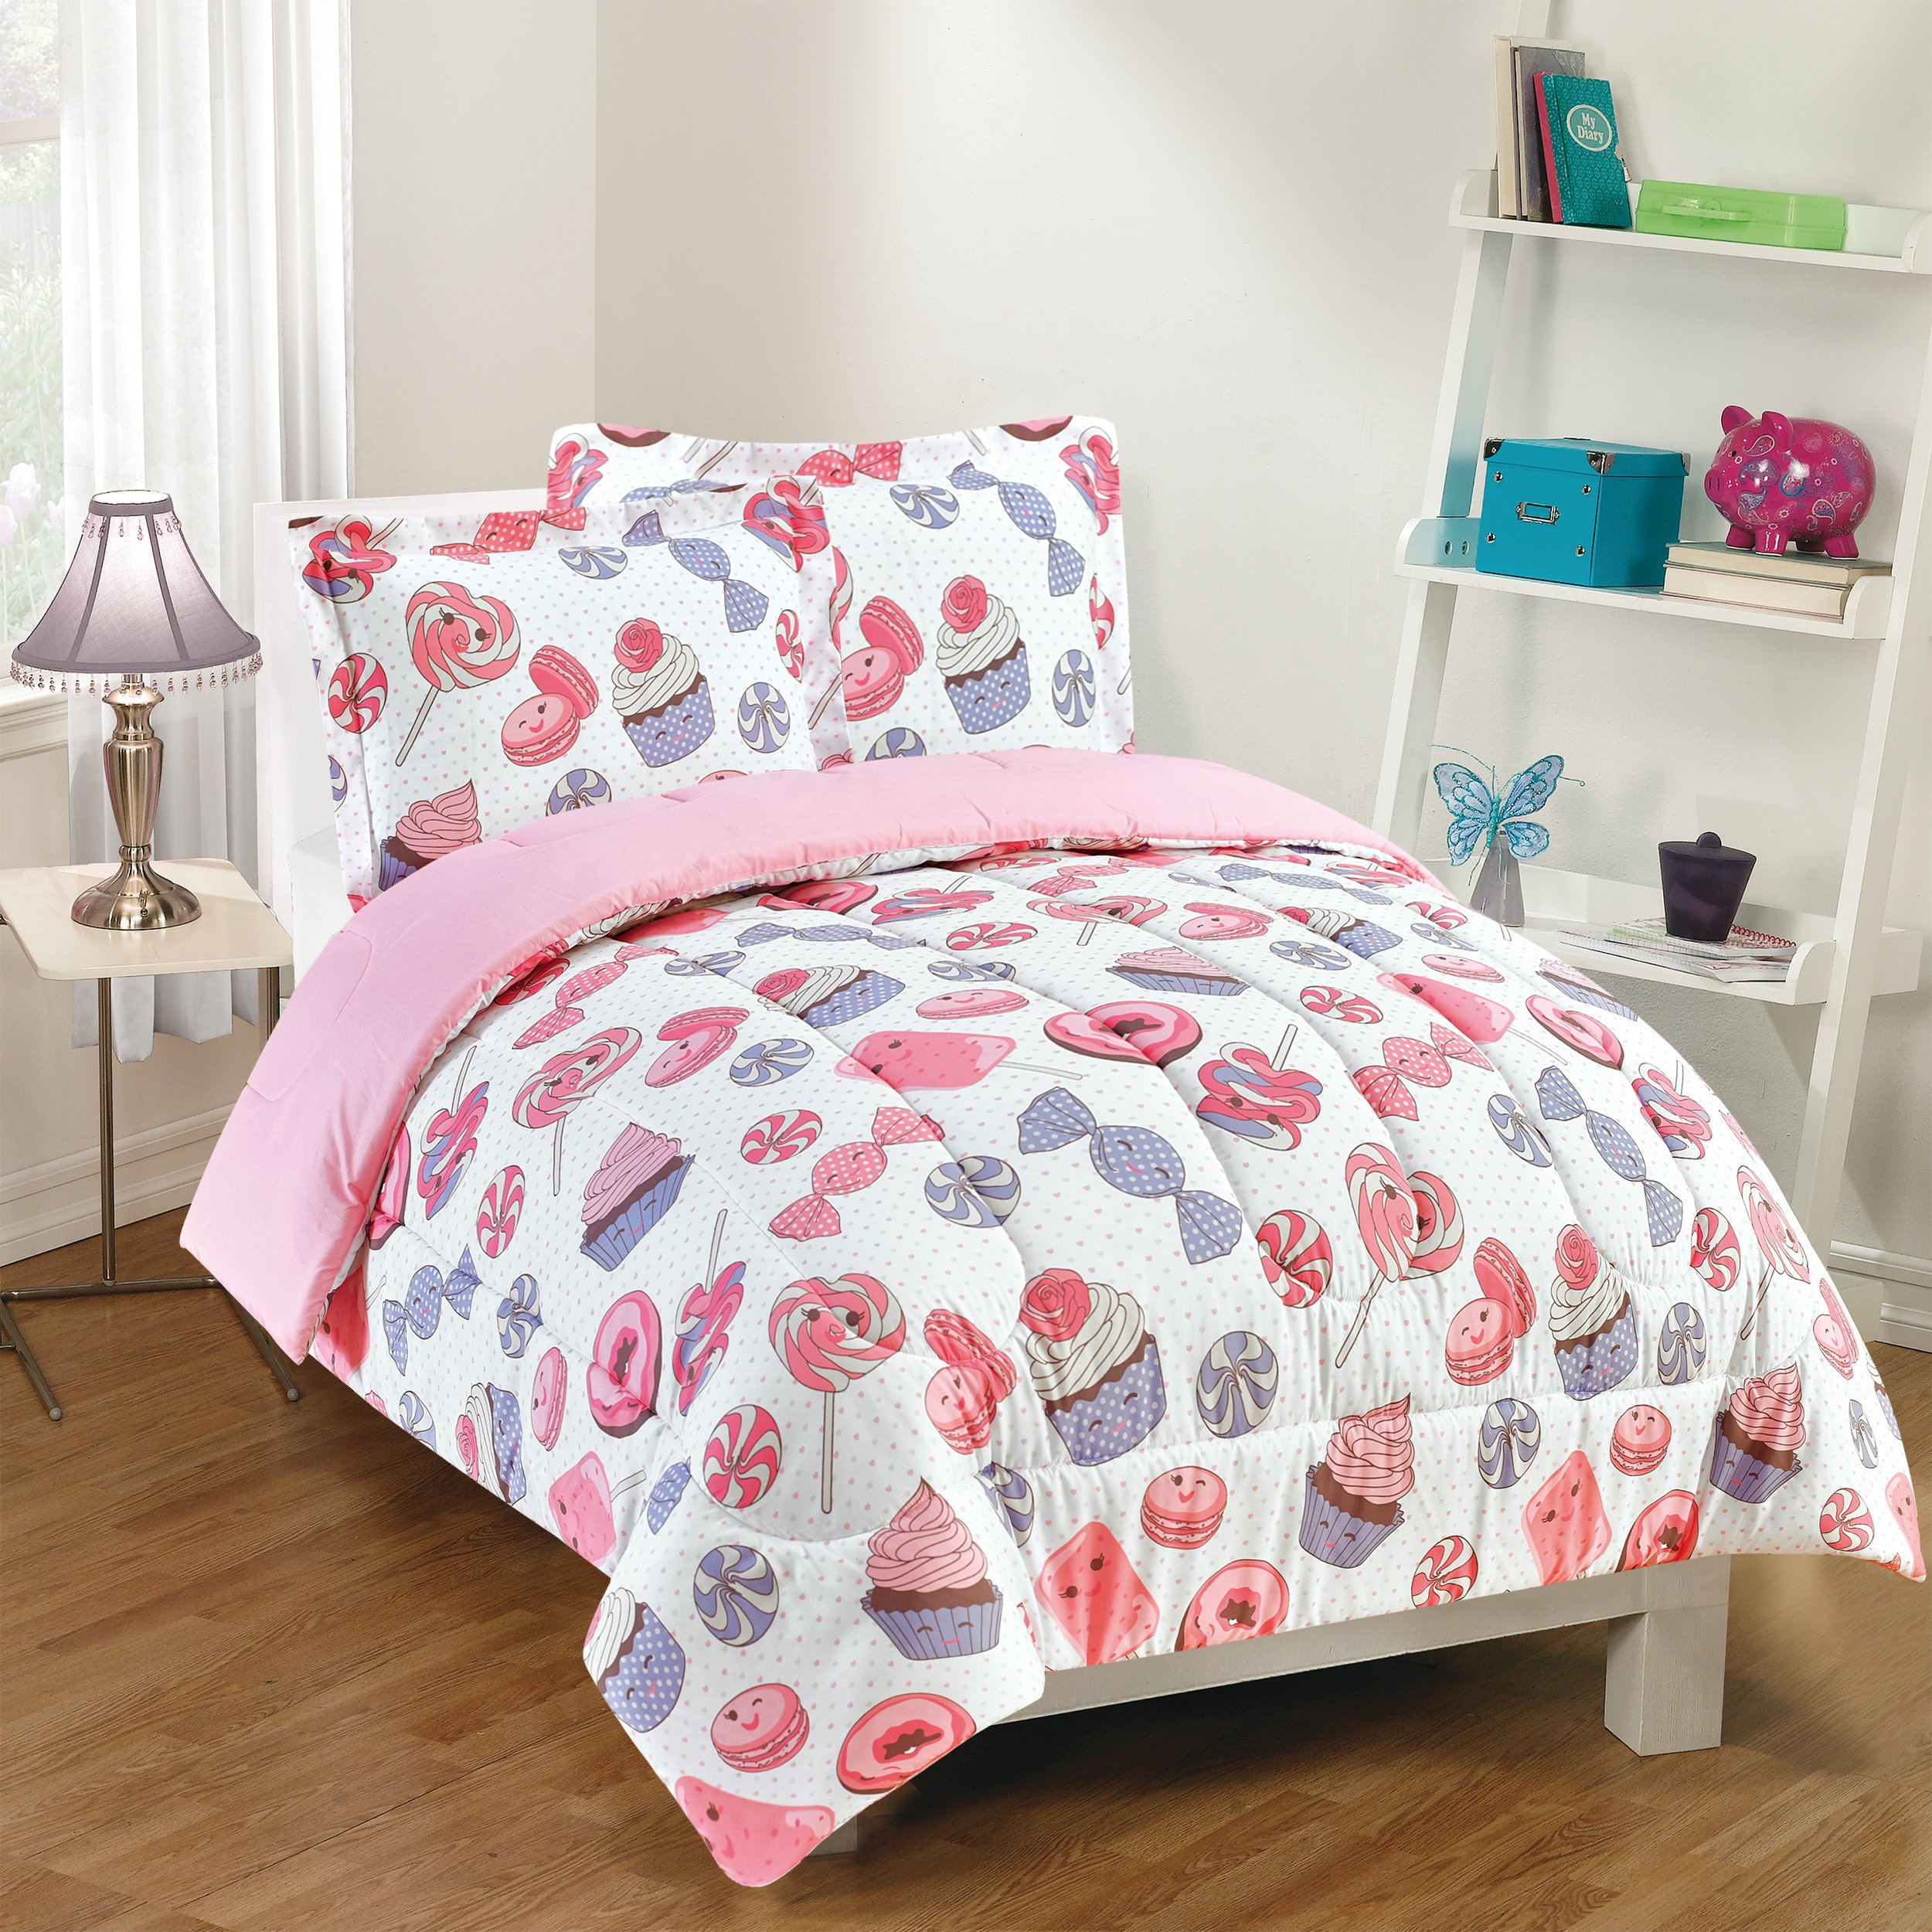 Gizmo Kids Sweet Treats Comforter Set, Full, Pink by Gizmo Kids